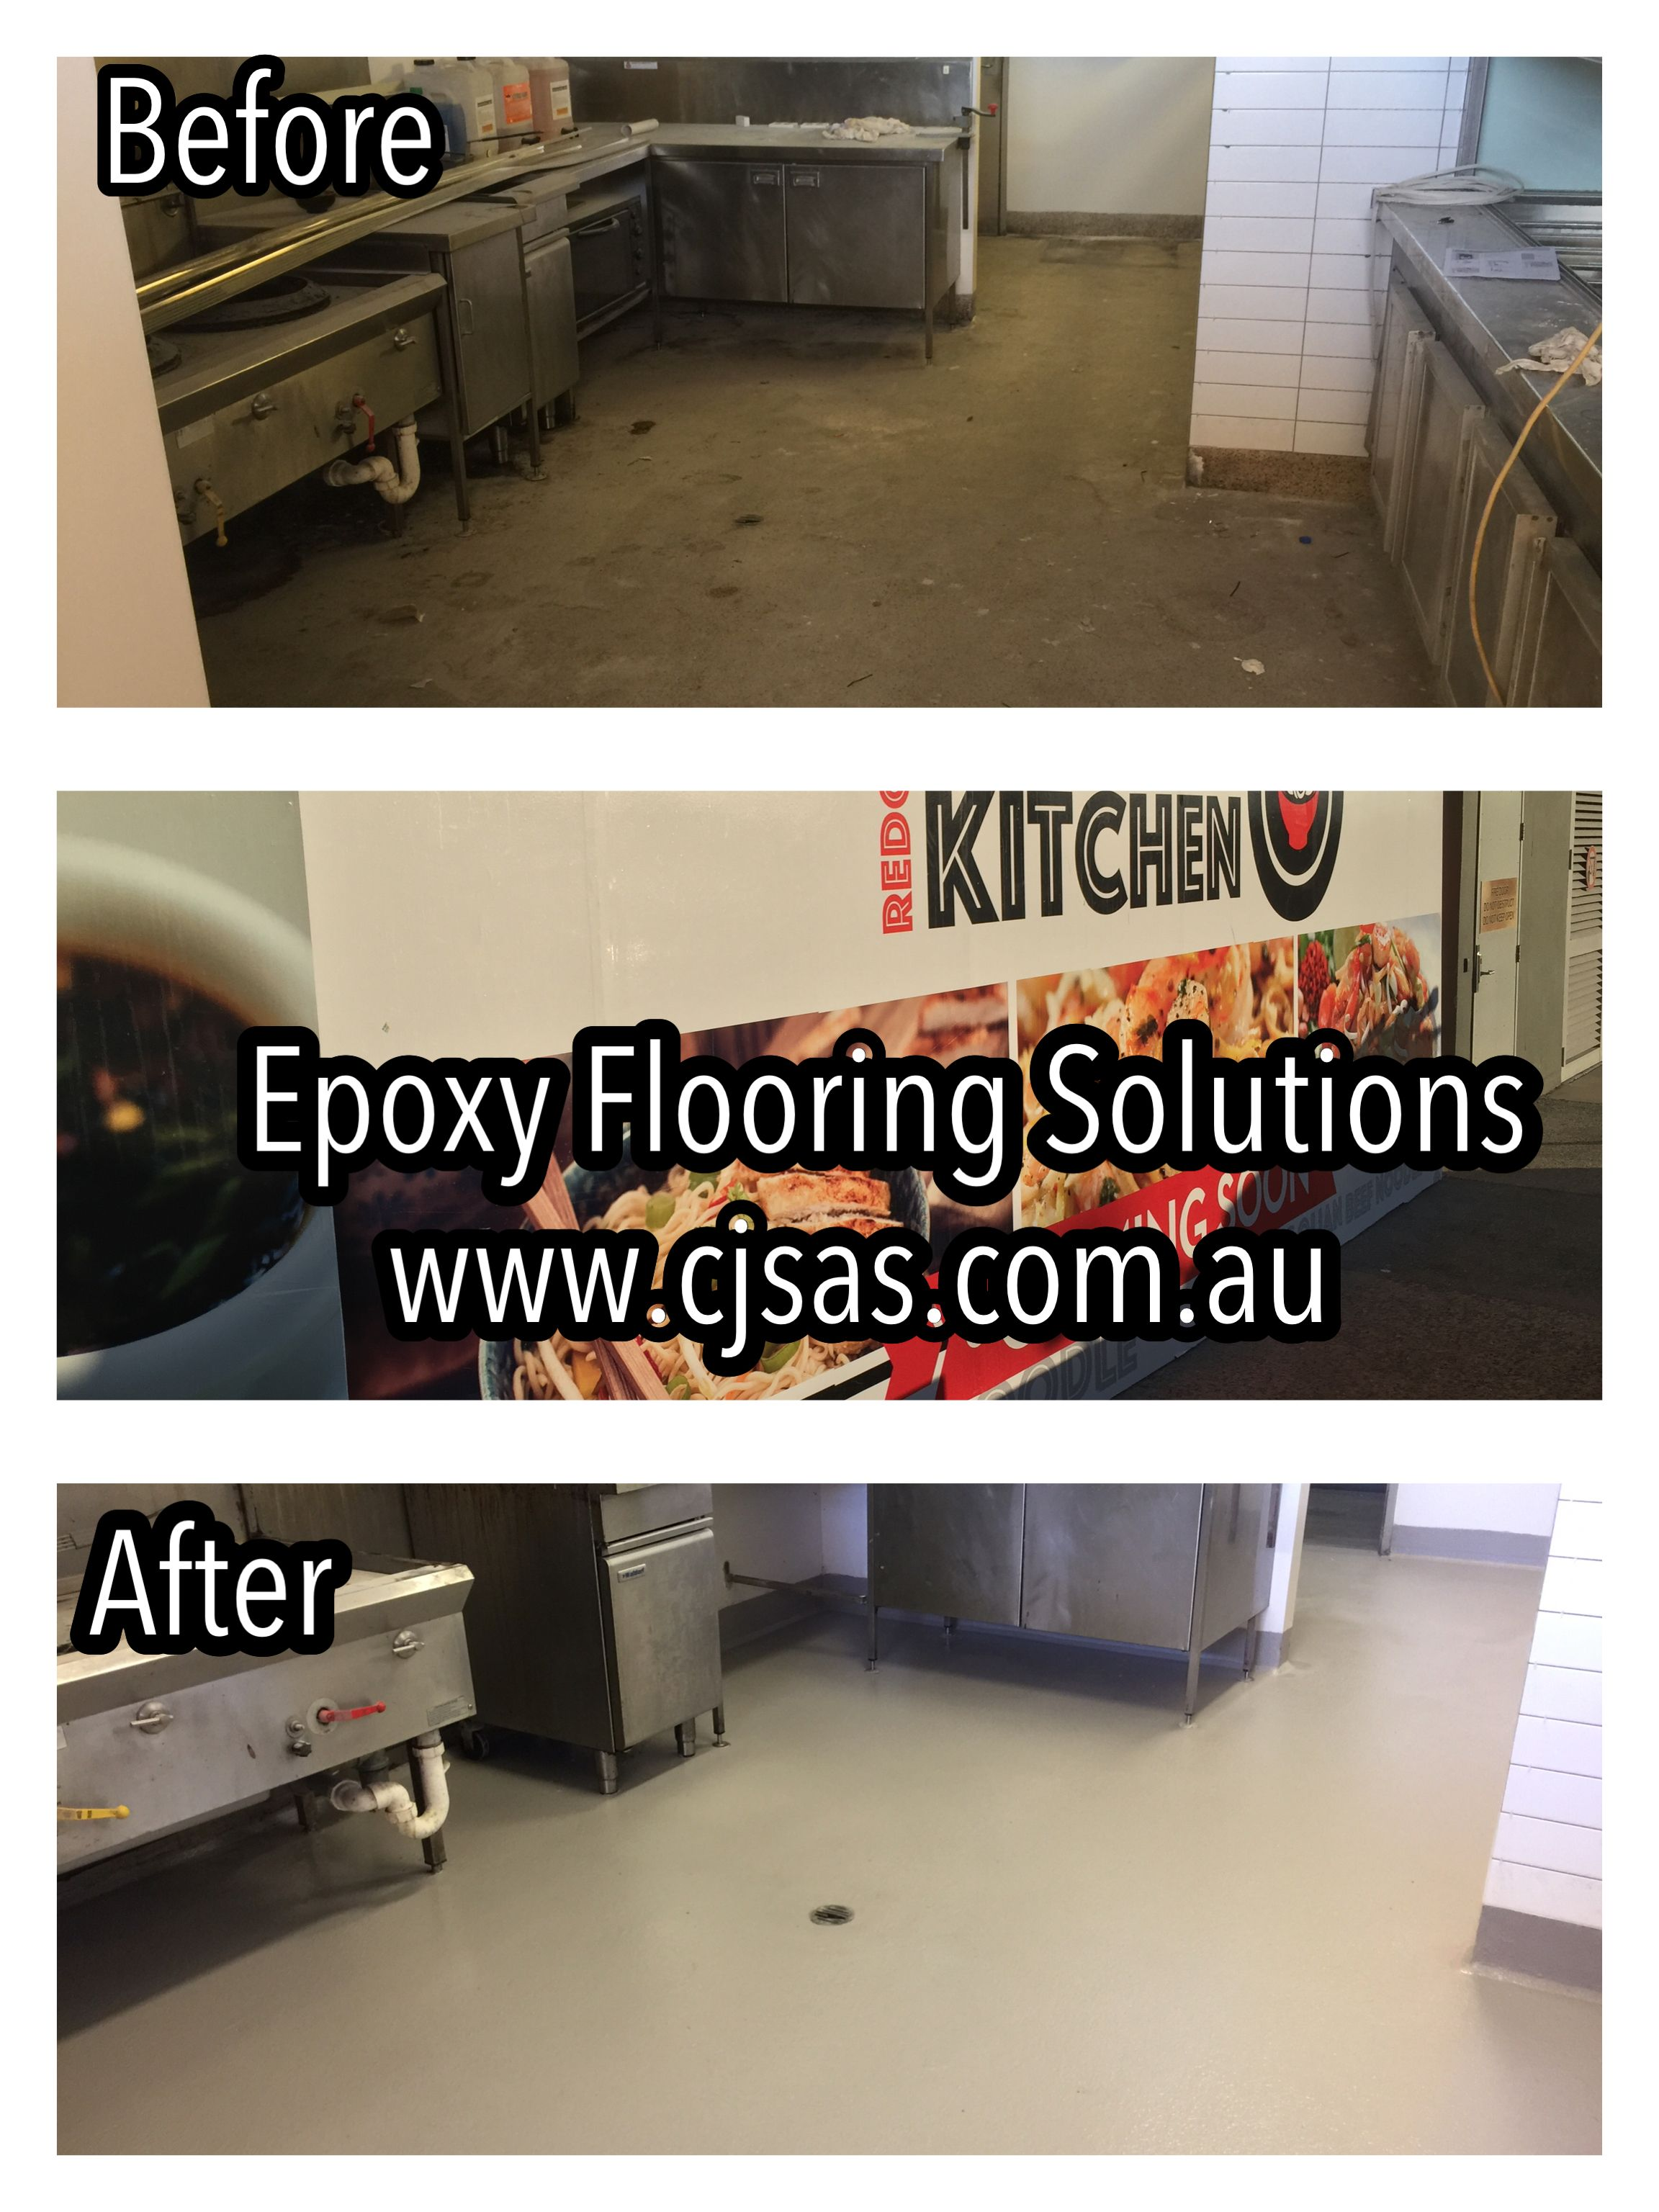 Pin by C J Stansfield & Sons Contra on Epoxy Flooring